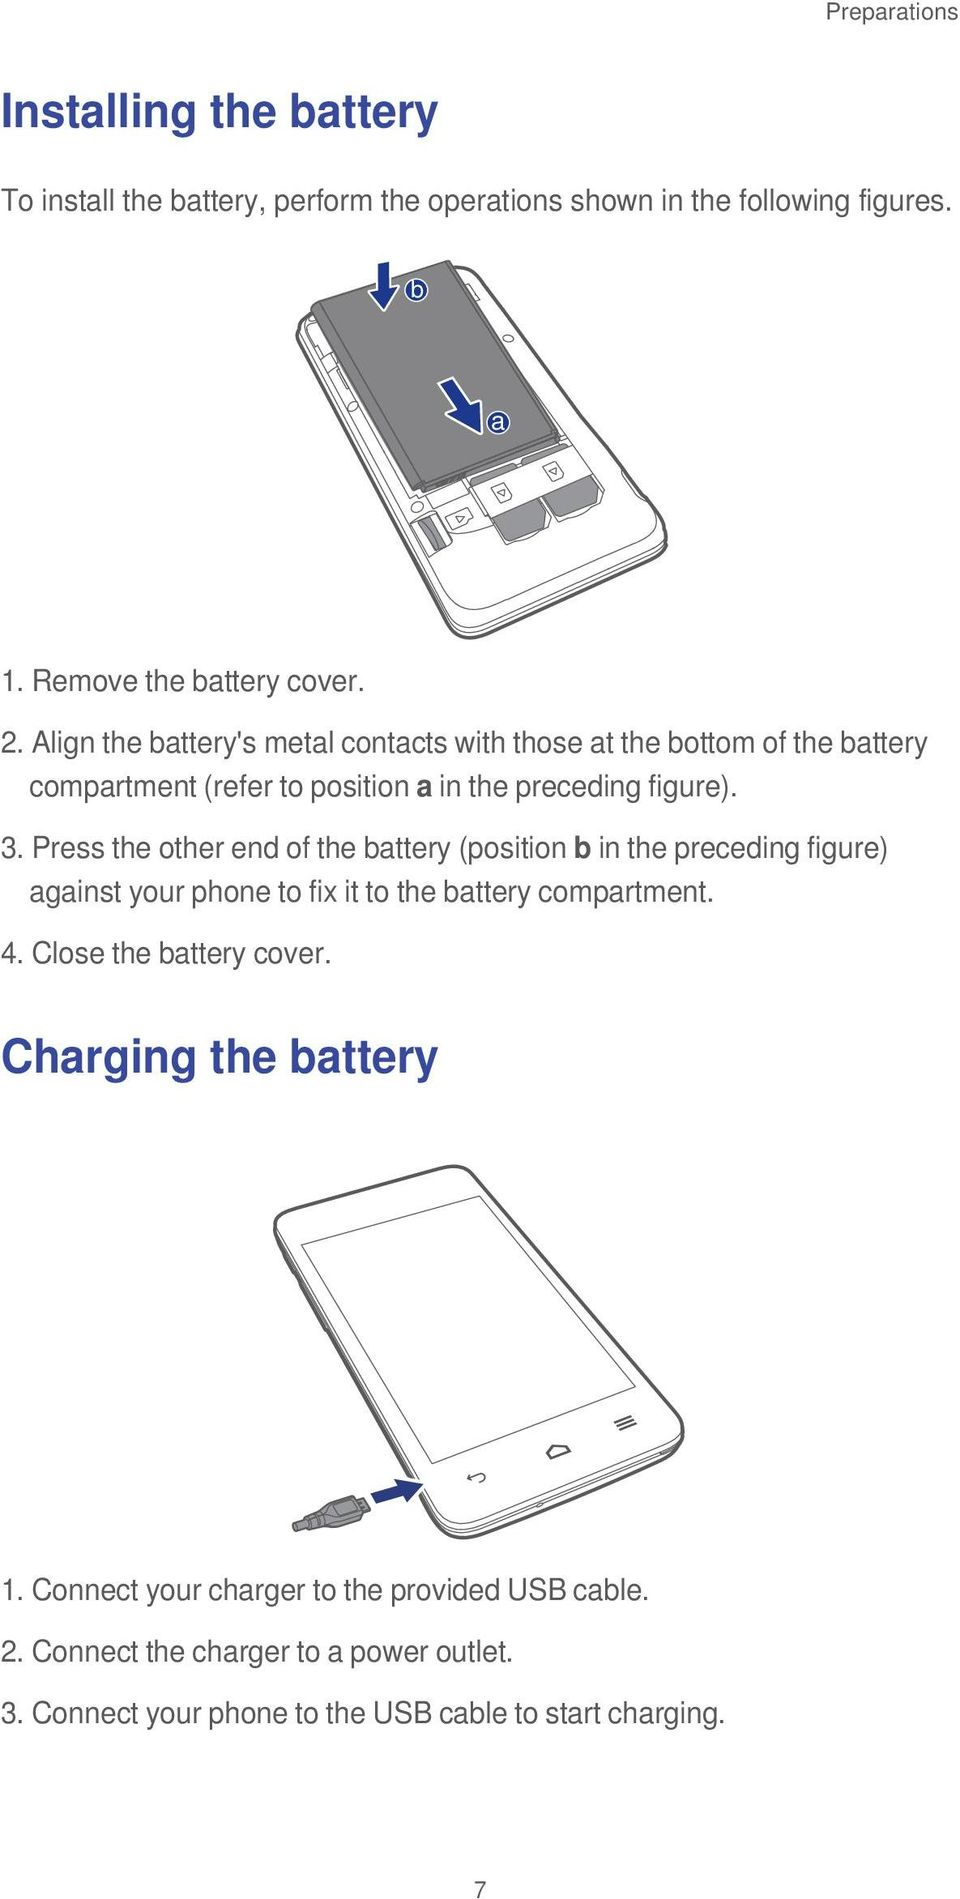 Press the other end of the battery (position b in the preceding figure) against your phone to fix it to the battery compartment. 4.